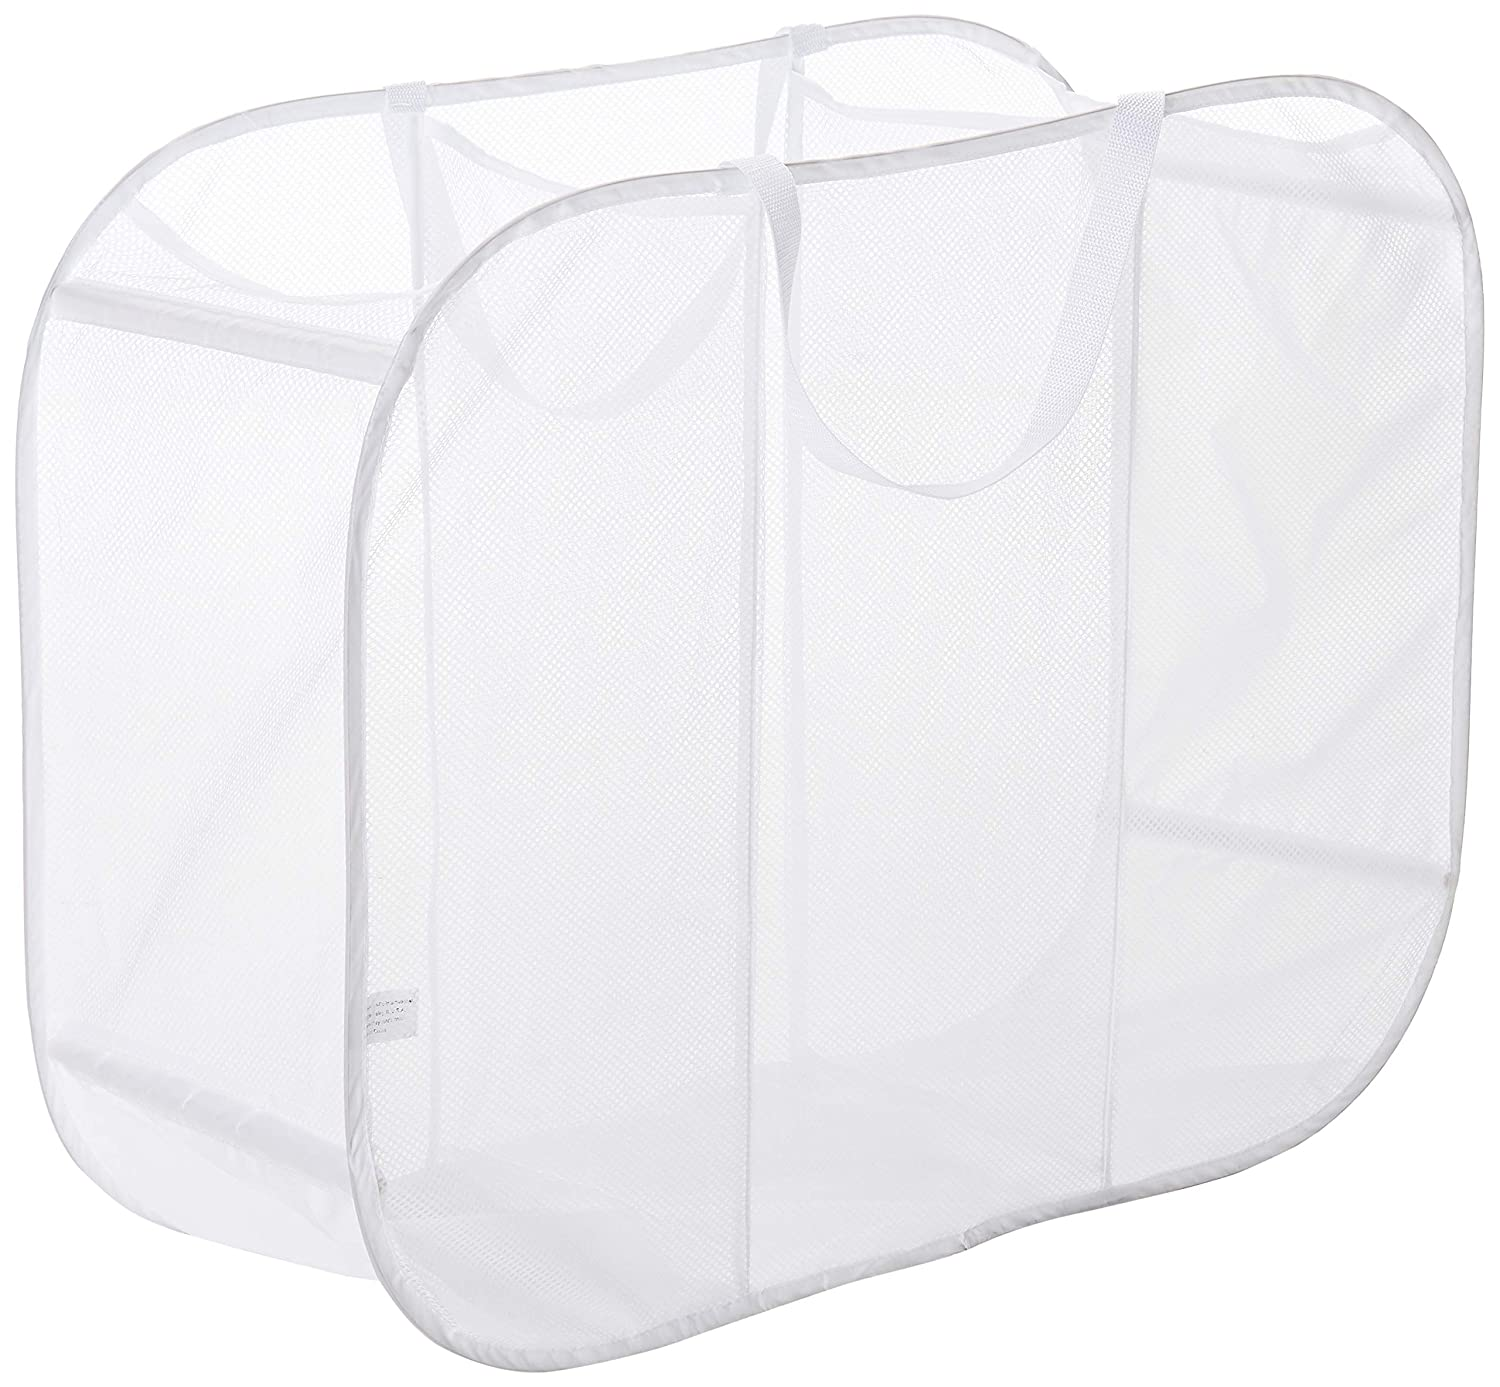 Honey-Can-Do Mesh Triple Sorter Laundry Basket, 30 Length x 11 Width x 24 Height, White HMP-04119